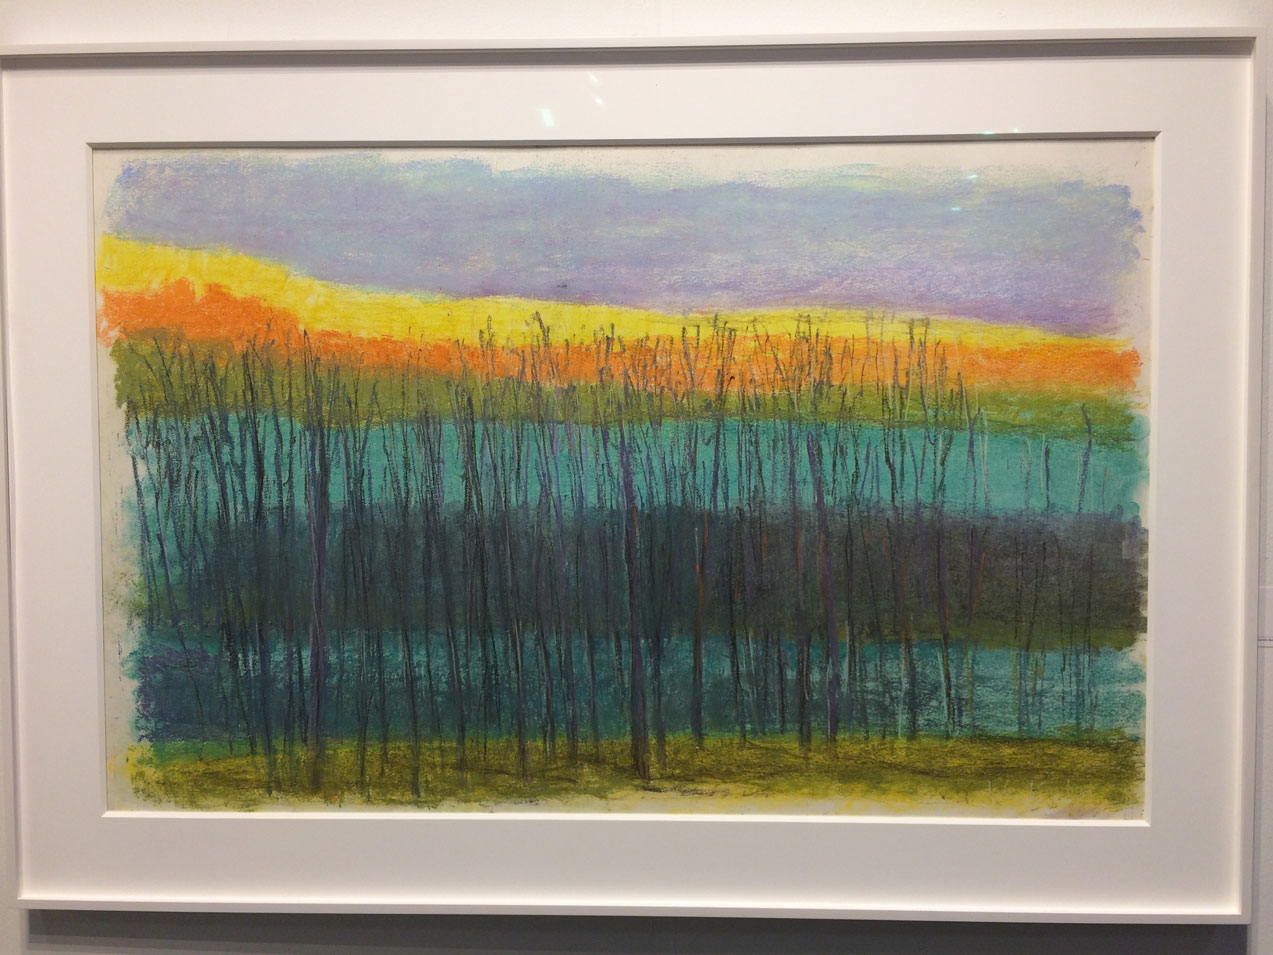 Wolf Kahn,  Bands and Layers , 2012, Pastel on paper, Somerville Manning Gallery, Greenville, DE